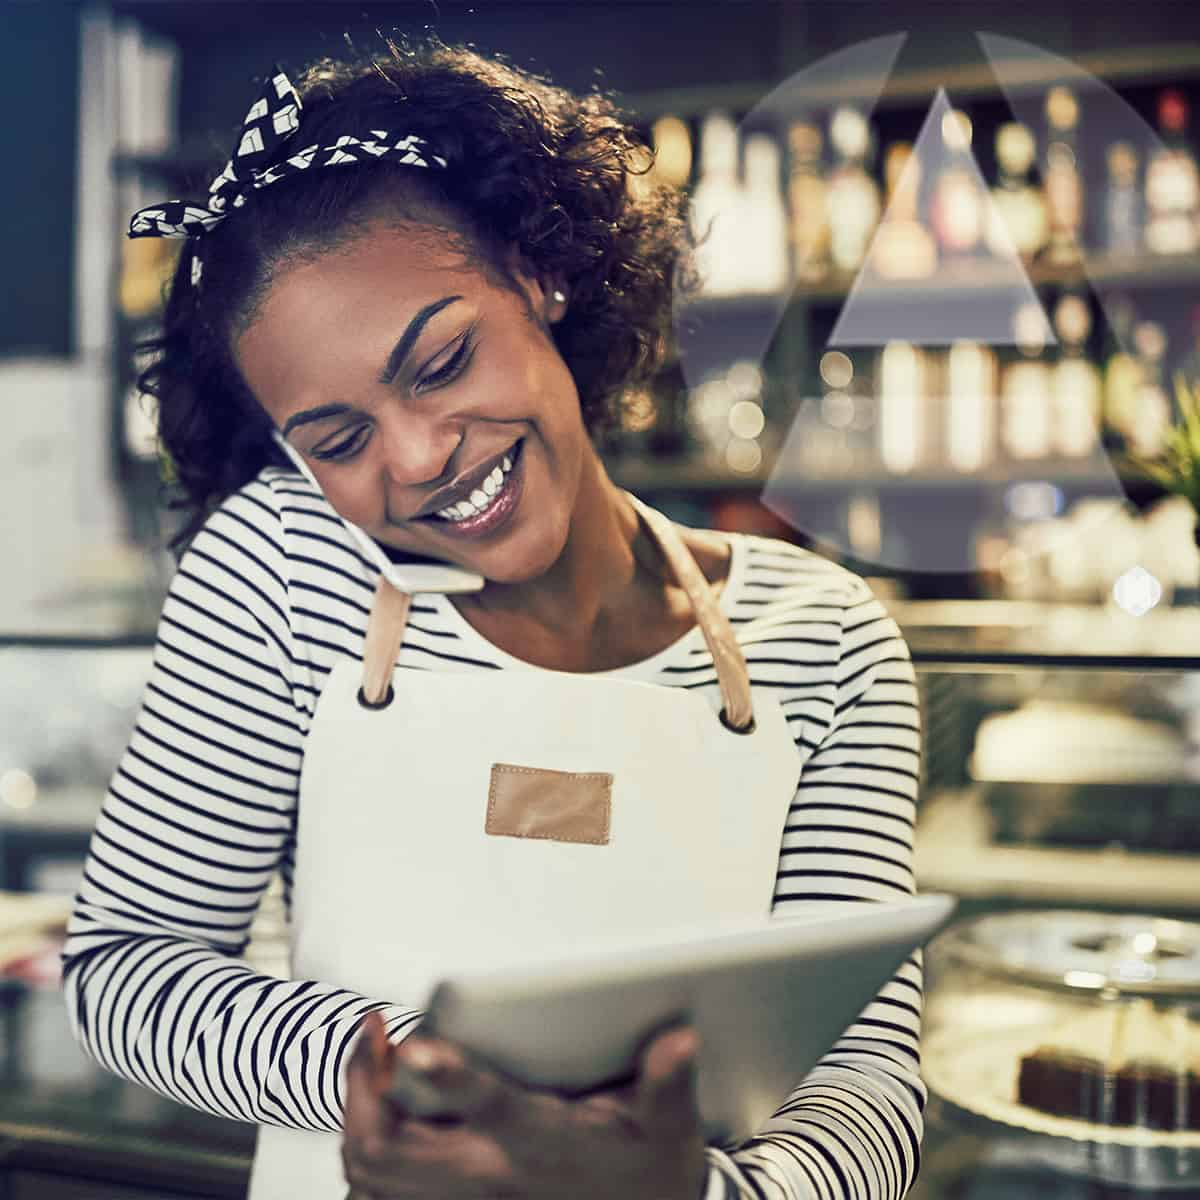 African American entrepreneur smiling while she looks at her iPad.